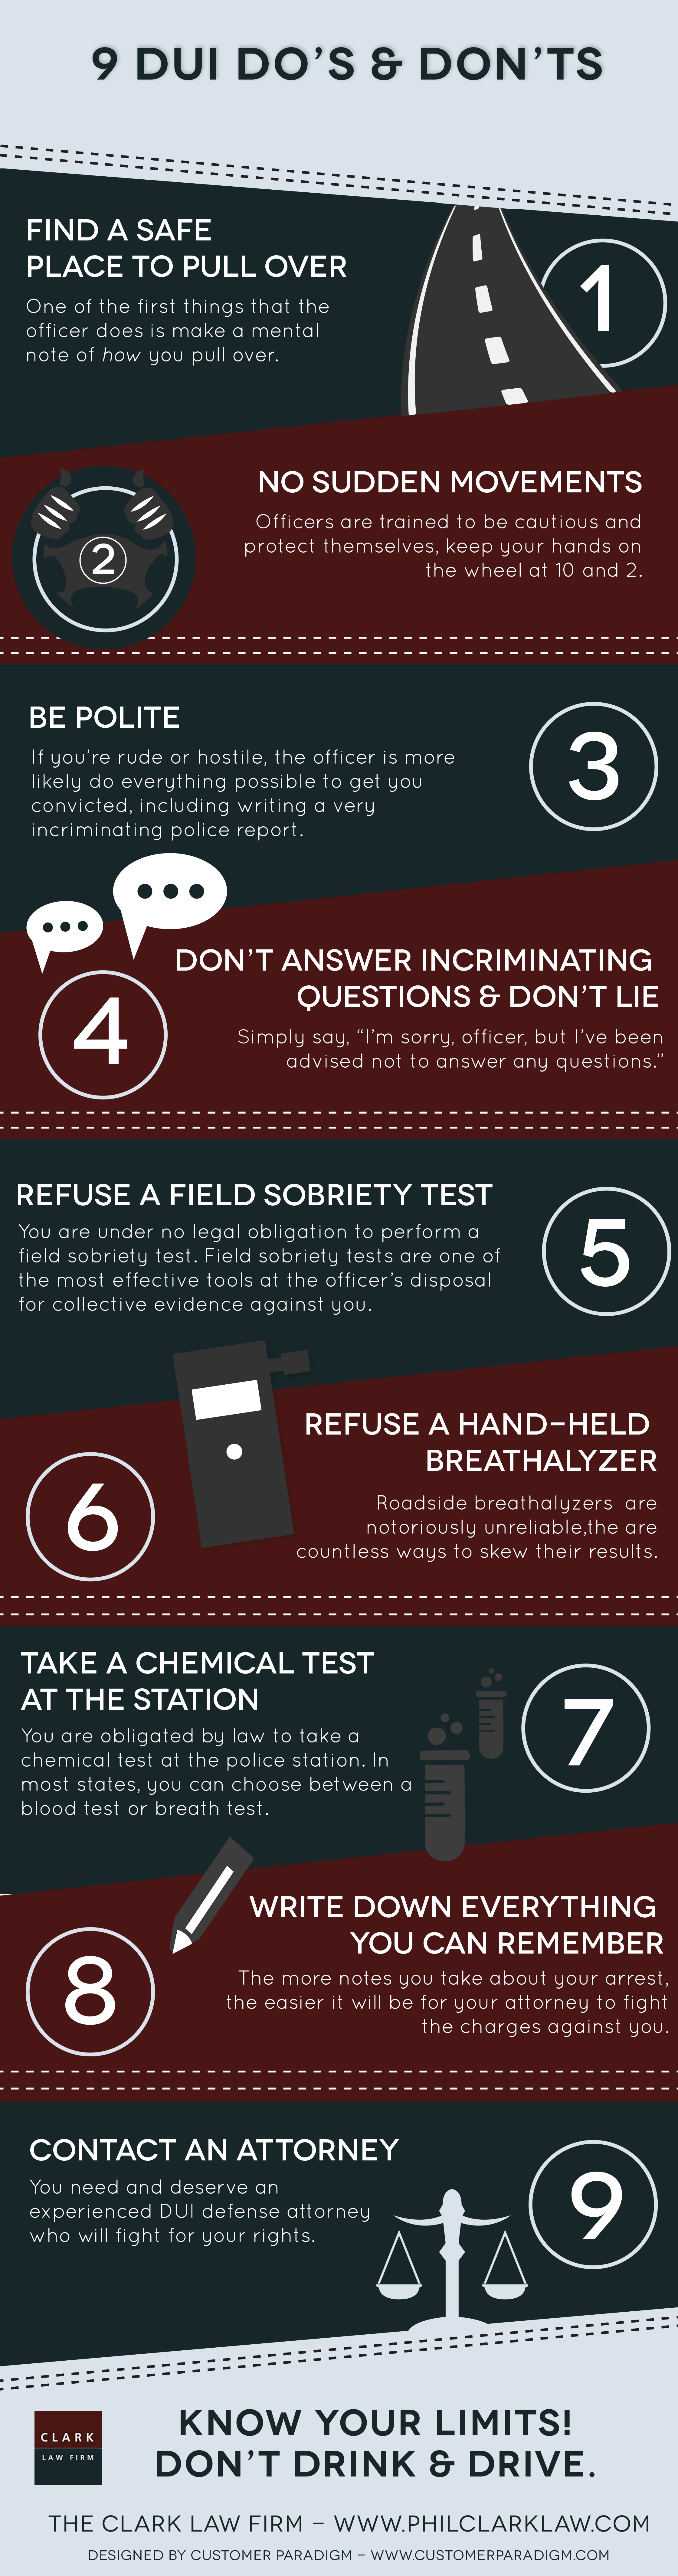 9 Tips If You Get Pulled Over For a DUI Infographic